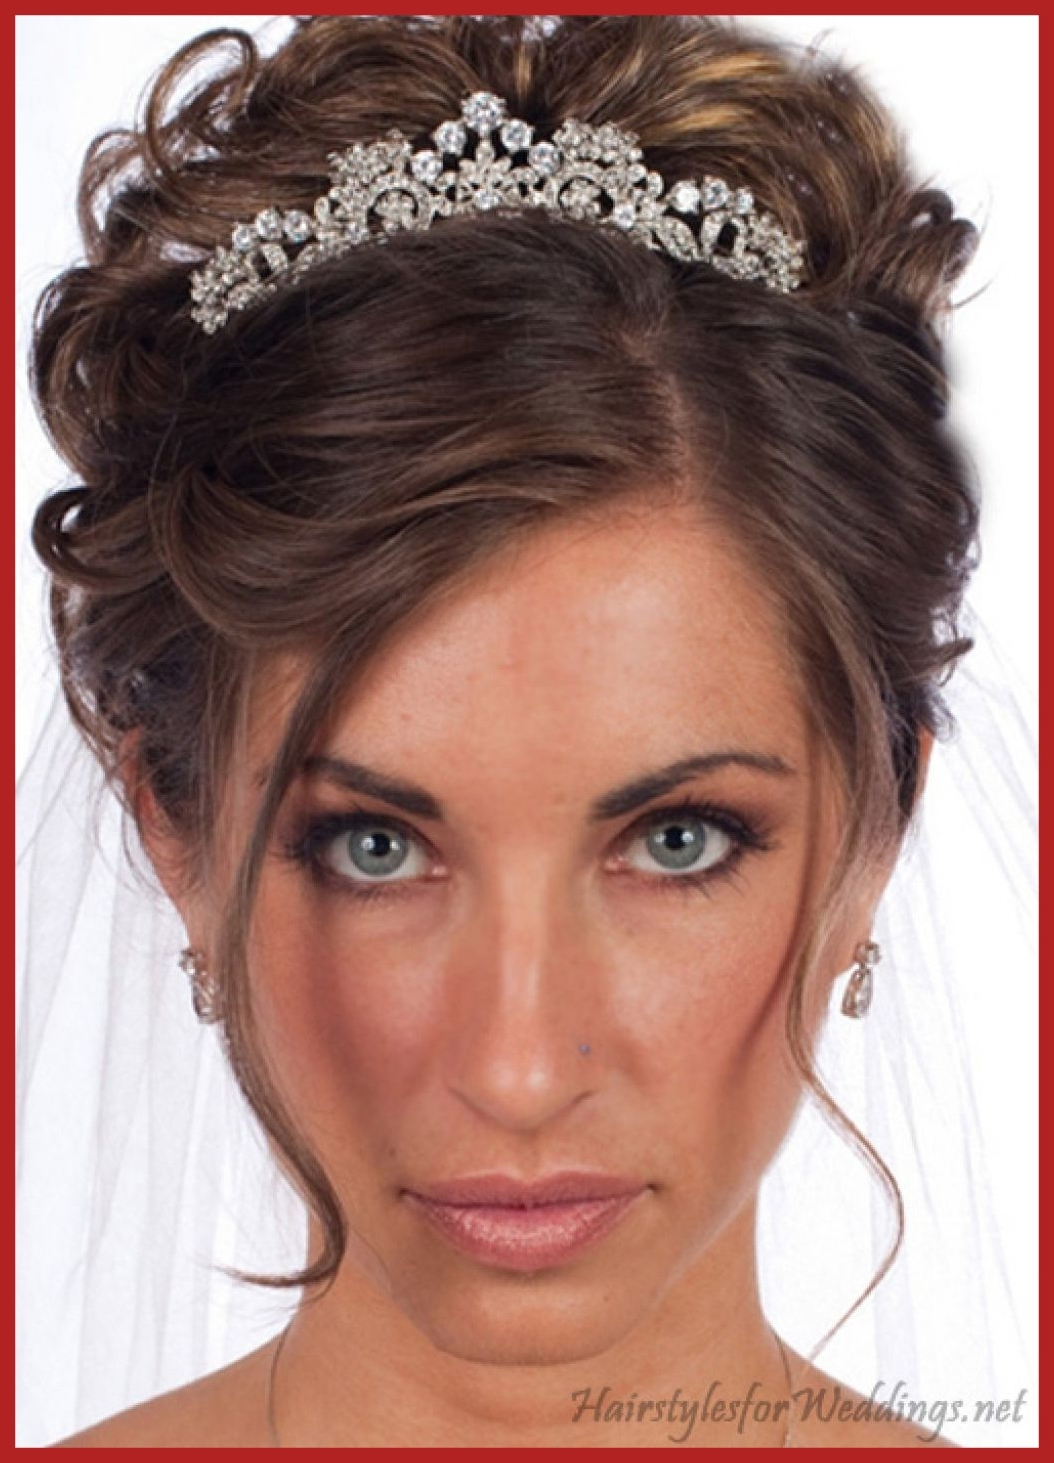 Famous Wedding Hairstyles For Long Hair Down With Veil And Tiara In Fascinating Wedding Hair Updo With Tiara Popular Long Hairstyle Idea (View 14 of 15)